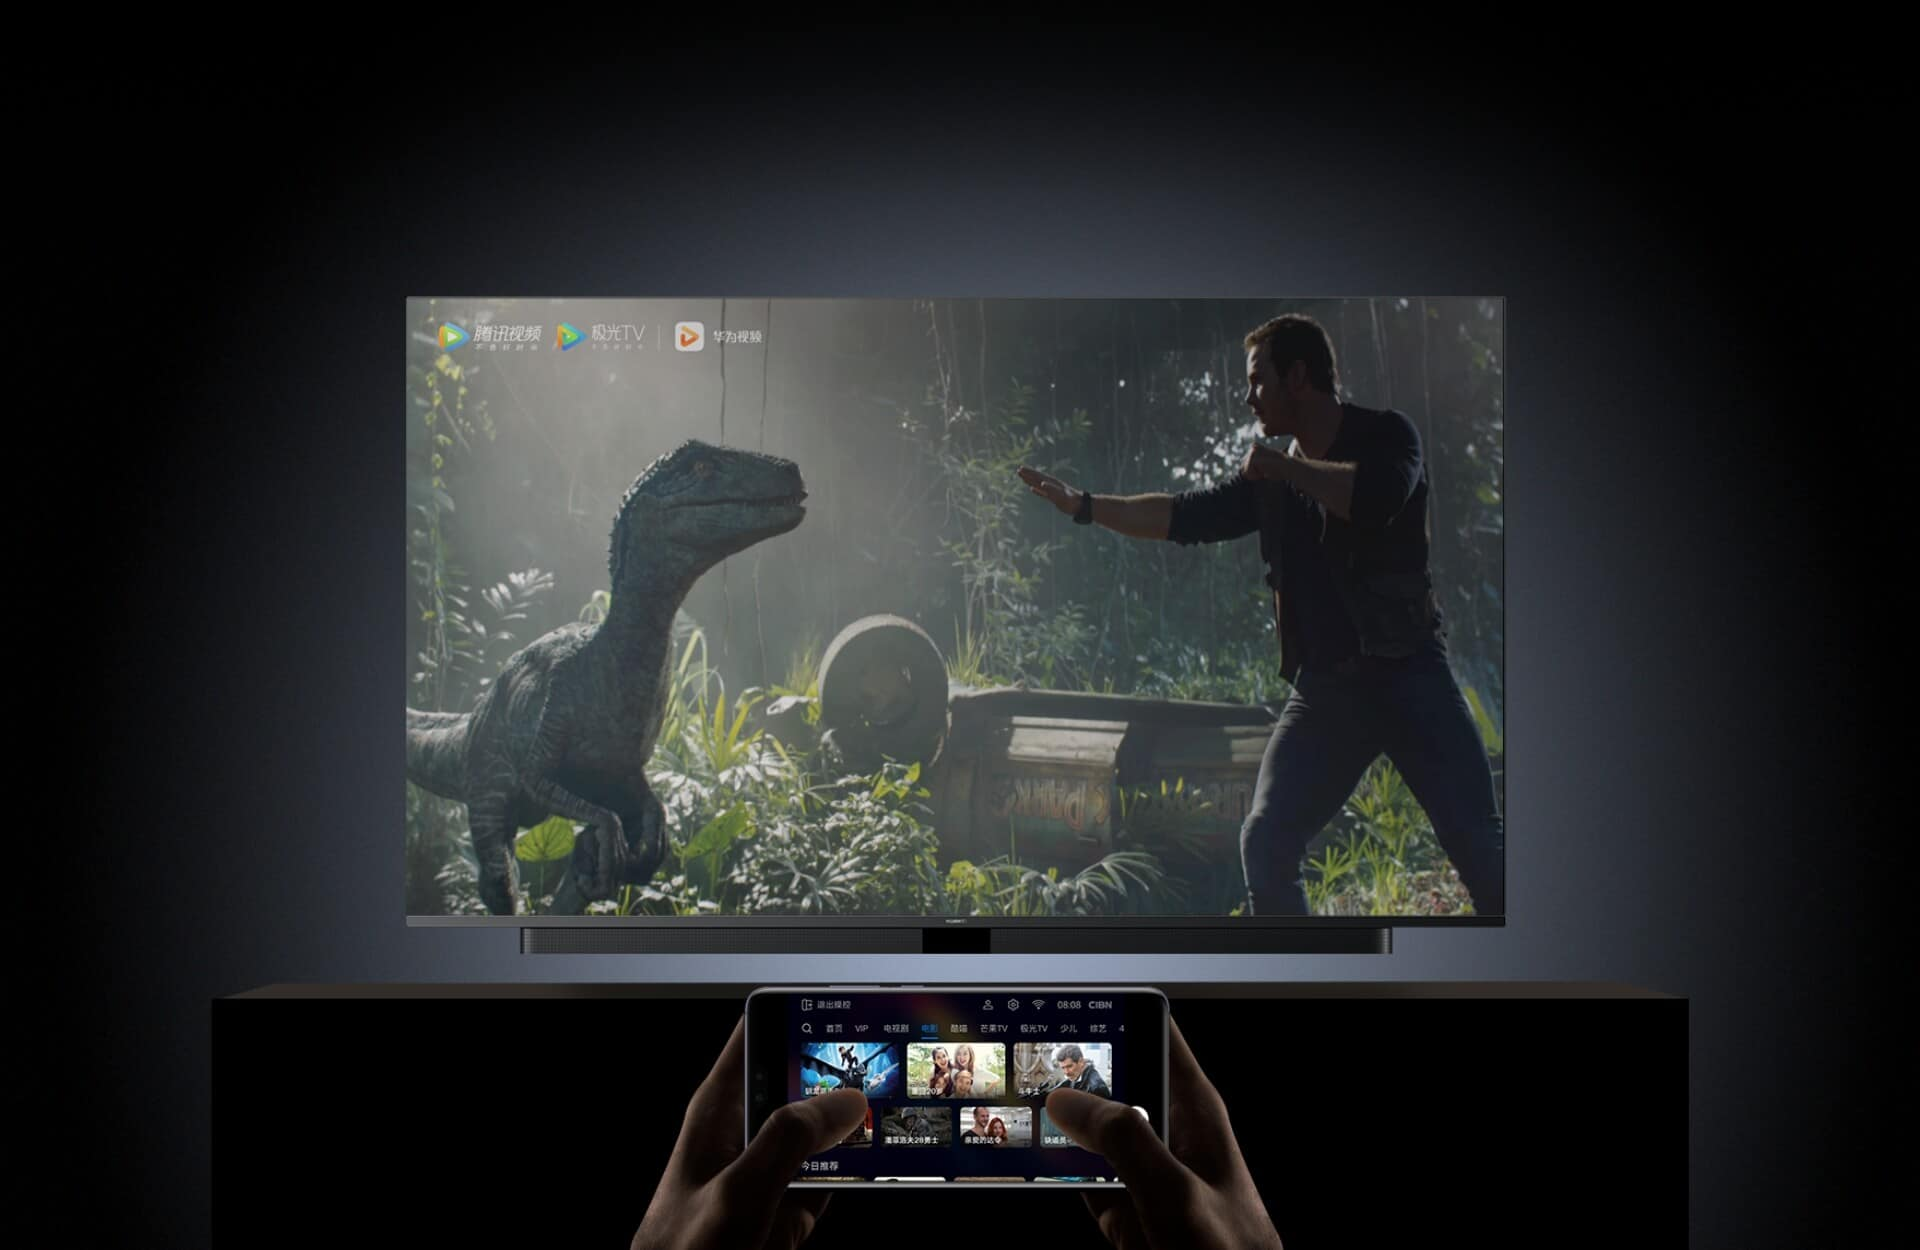 Huawei Smart Screen 4K TV launched in China, priced at 6999 yuan